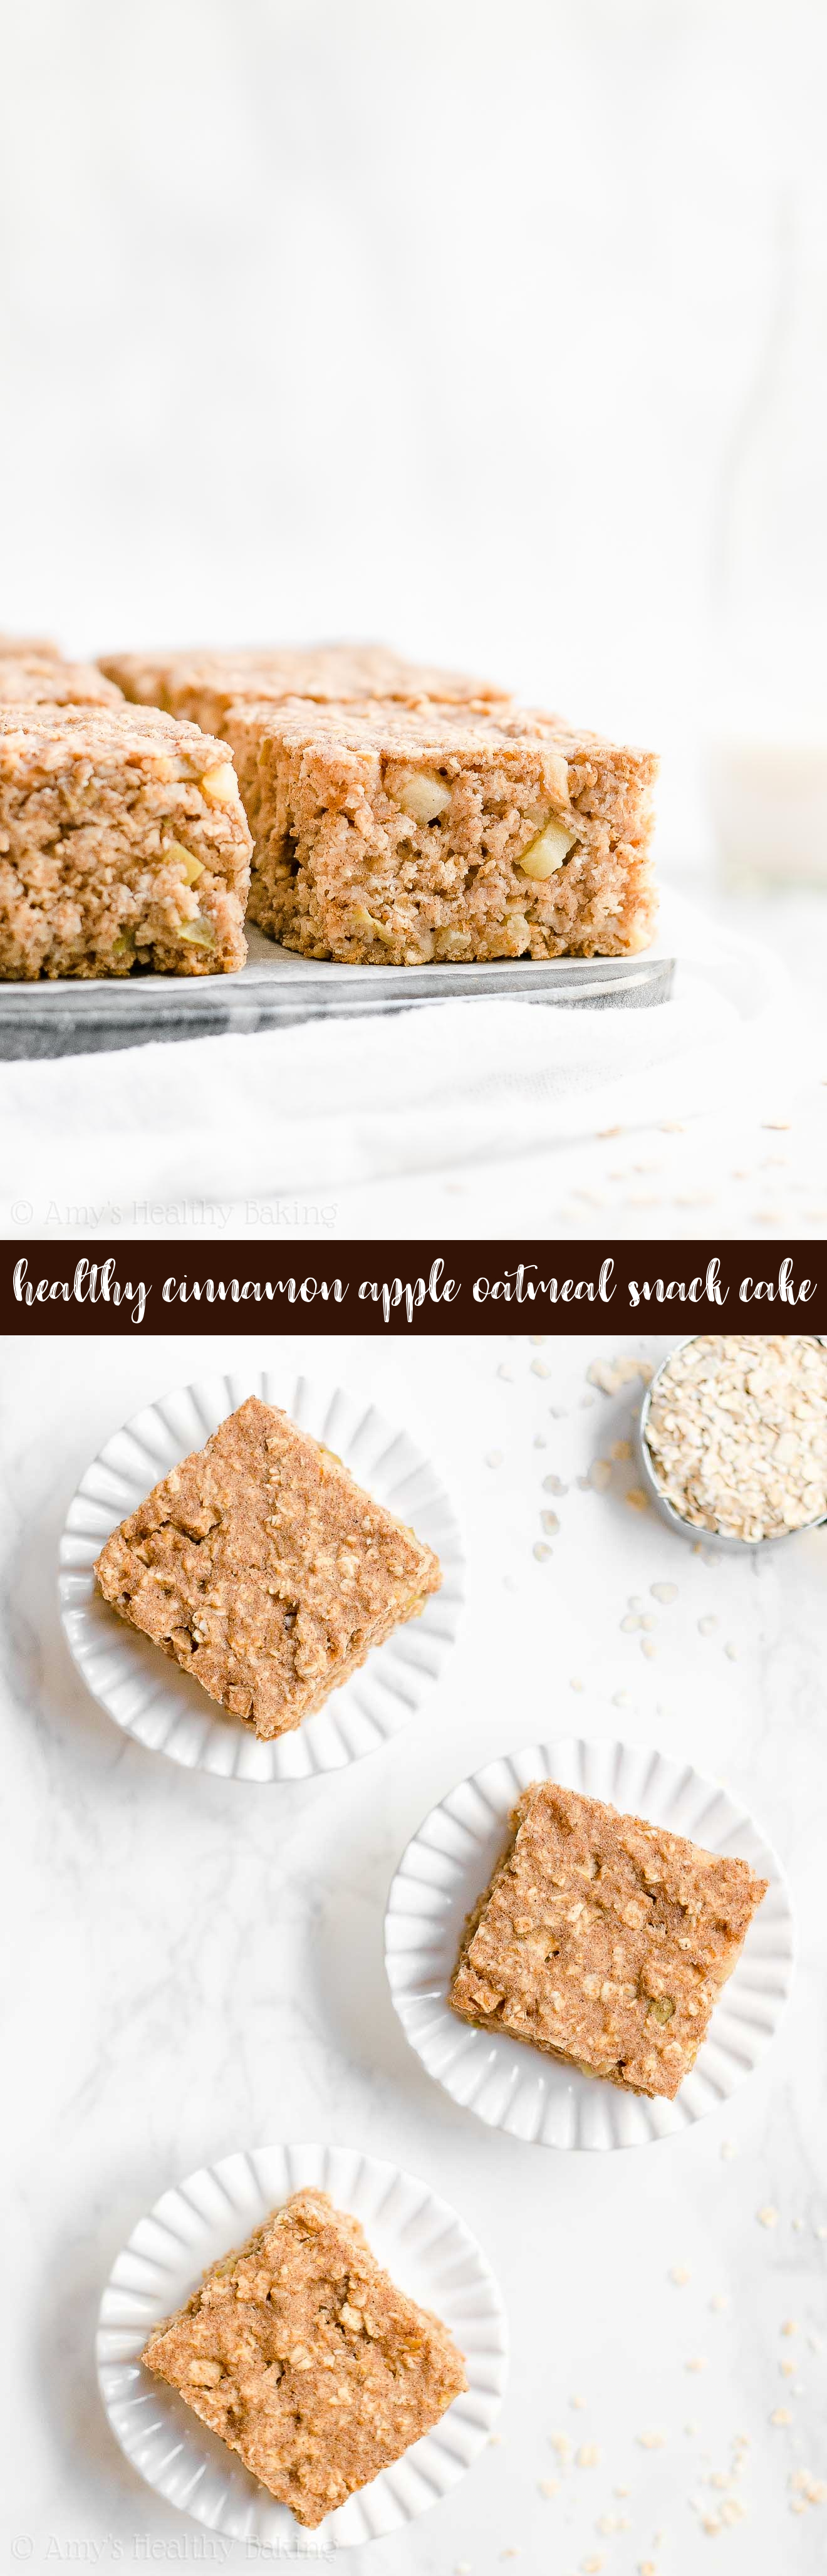 Best Ever Healthy Cinnamon Apple Oatmeal Snack Cake Recipe